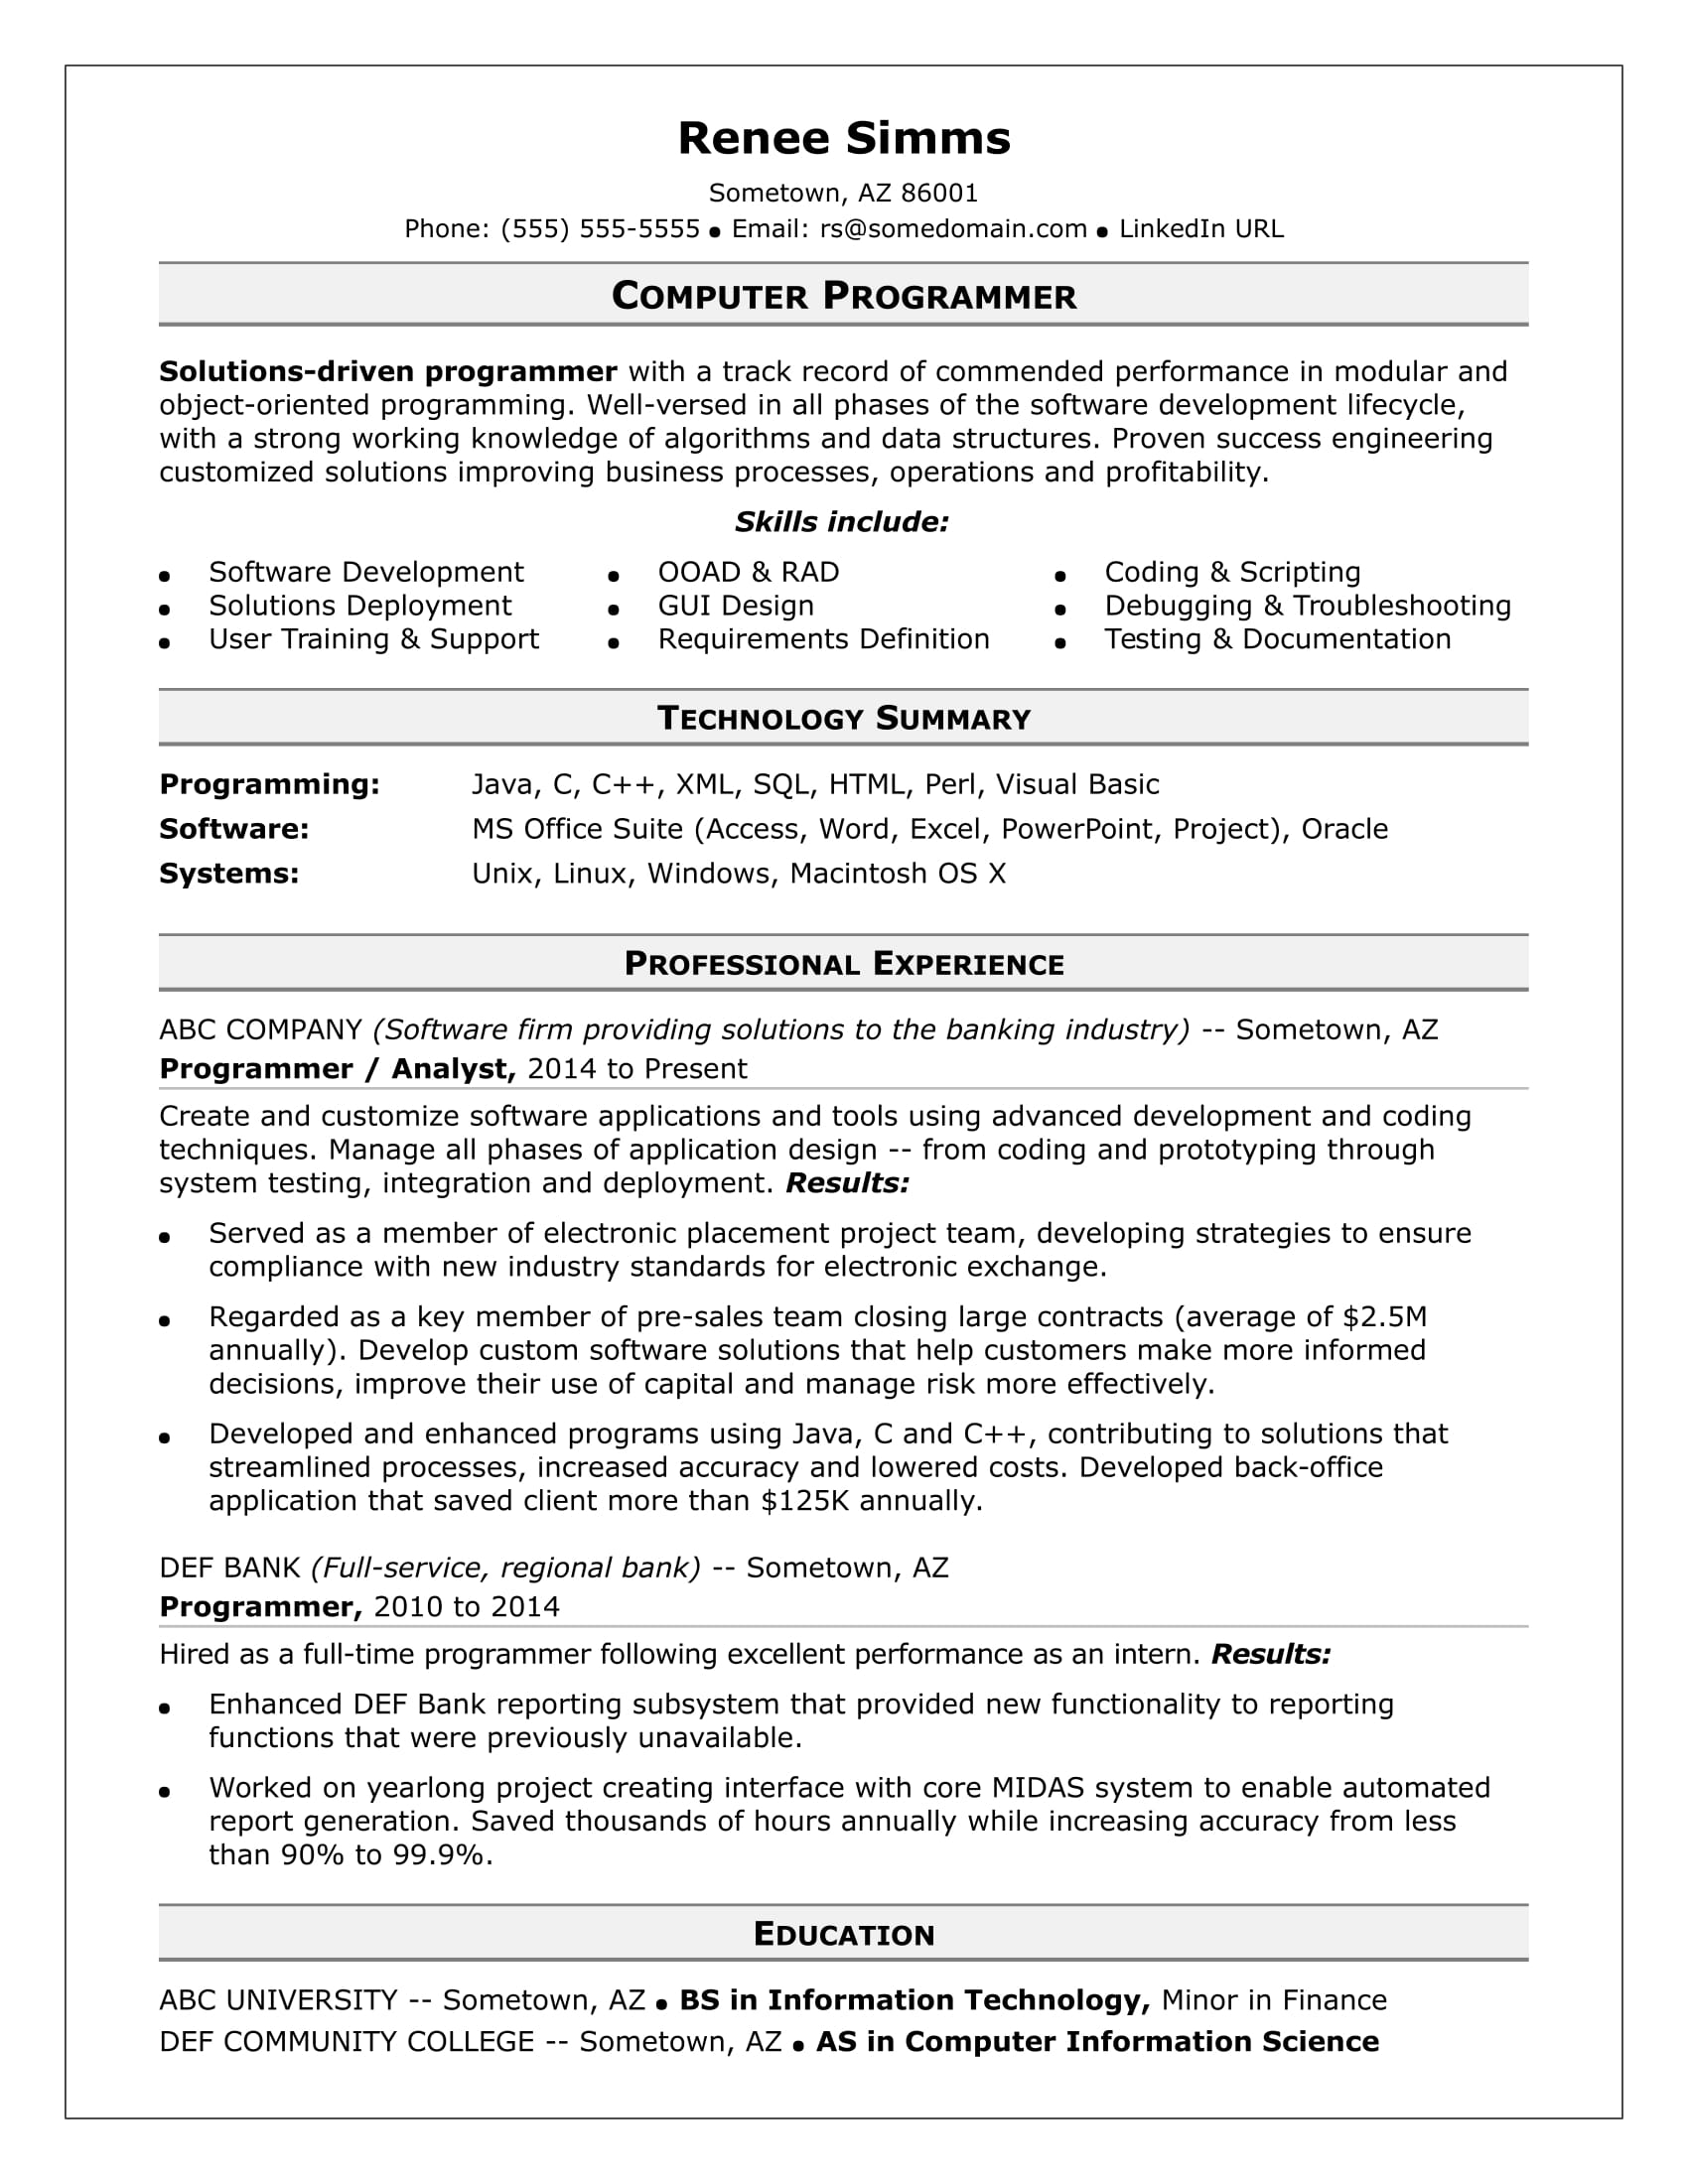 Sample Resume For A Midlevel Computer Programmer  What Do Resumes Look Like